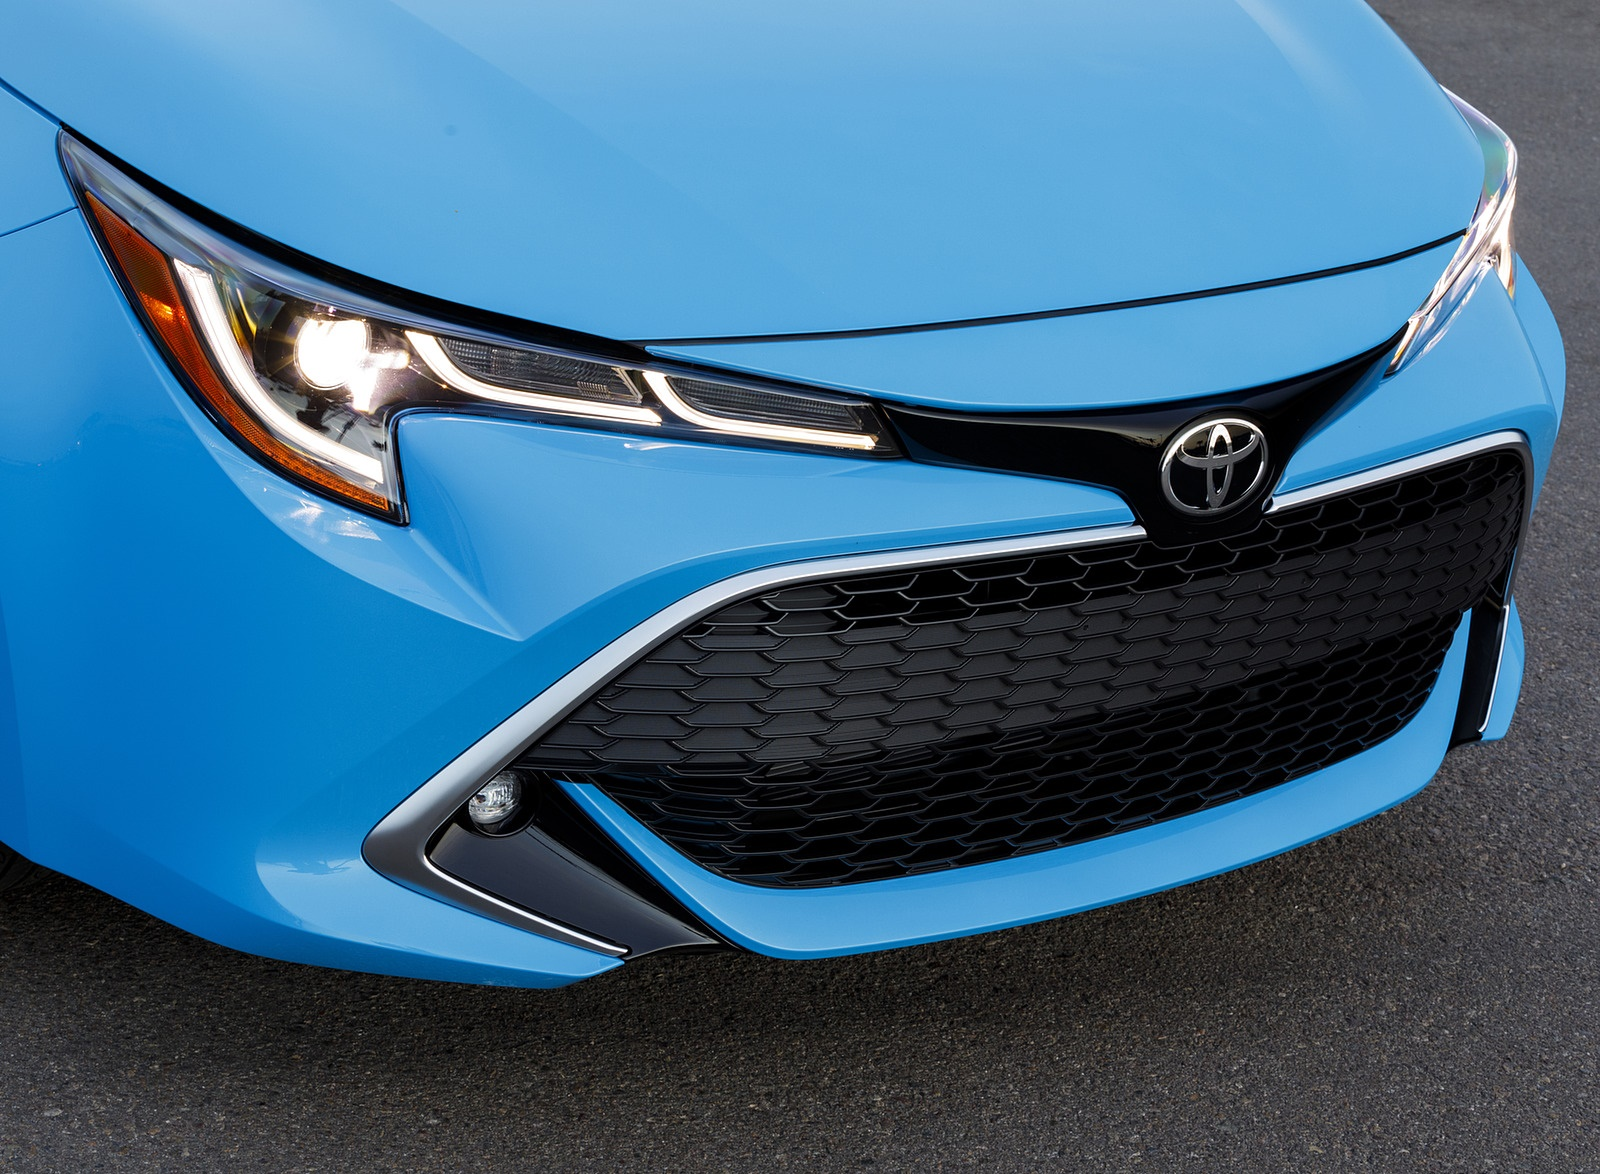 2019 Toyota Corolla Hatchback Grill Wallpapers #36 of 75